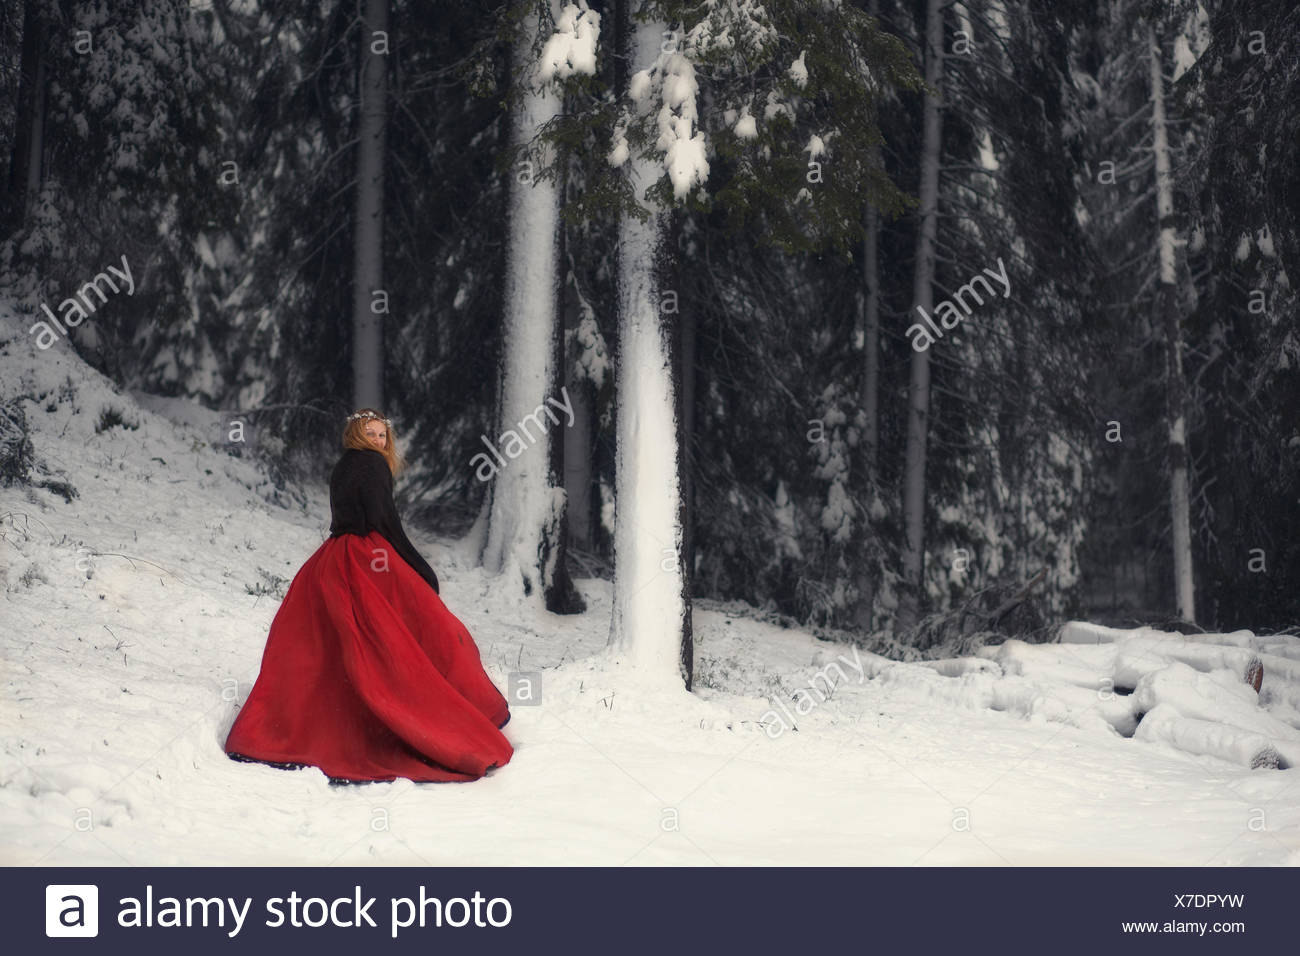 Woman in red dress in snowcapped forest - Stock Image